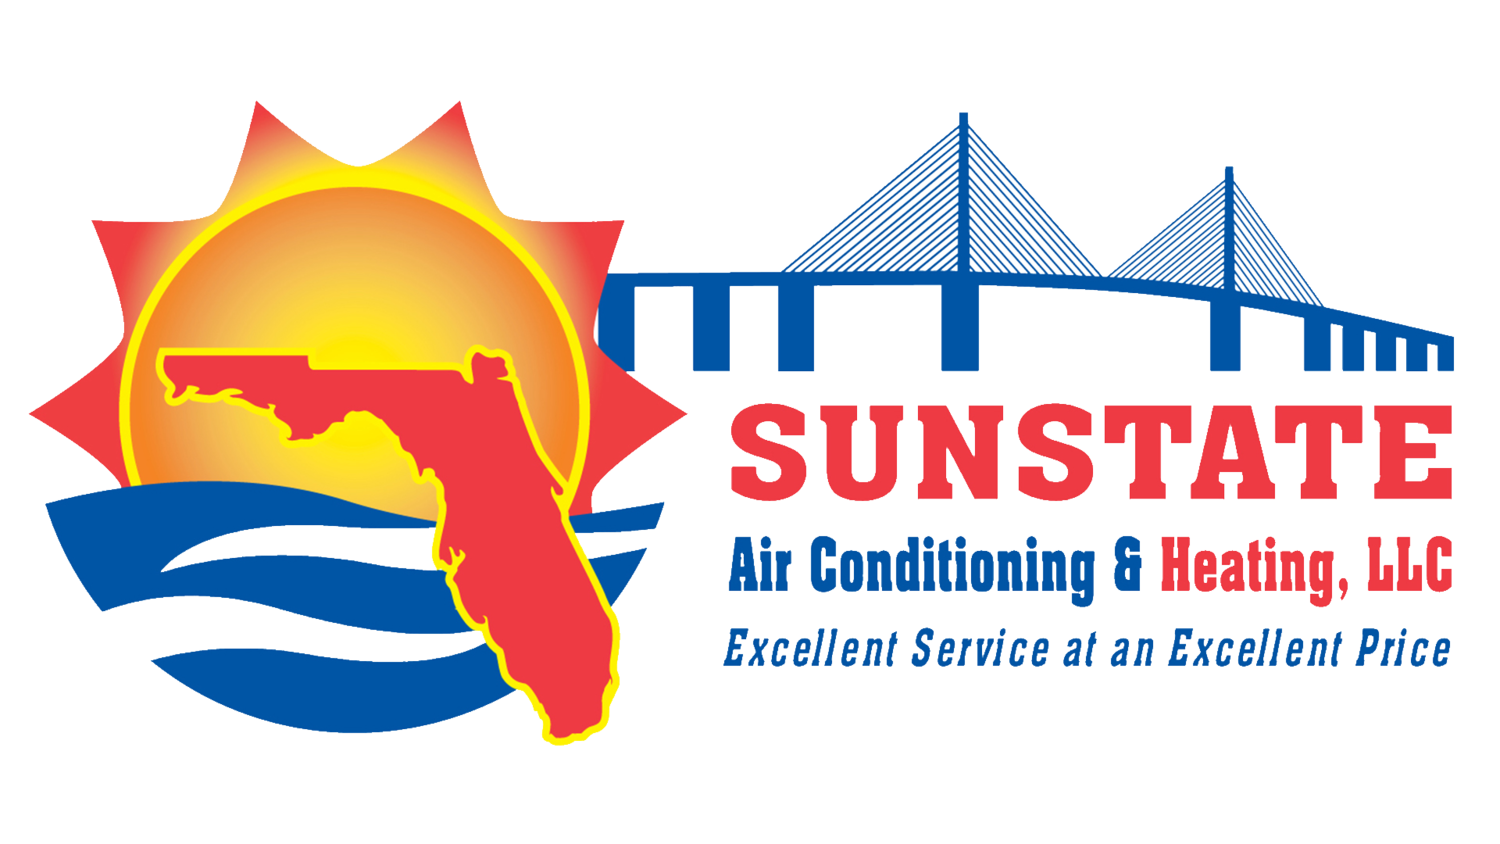 Sunstate Air Conditioning & Heating, LLC bradenton fl